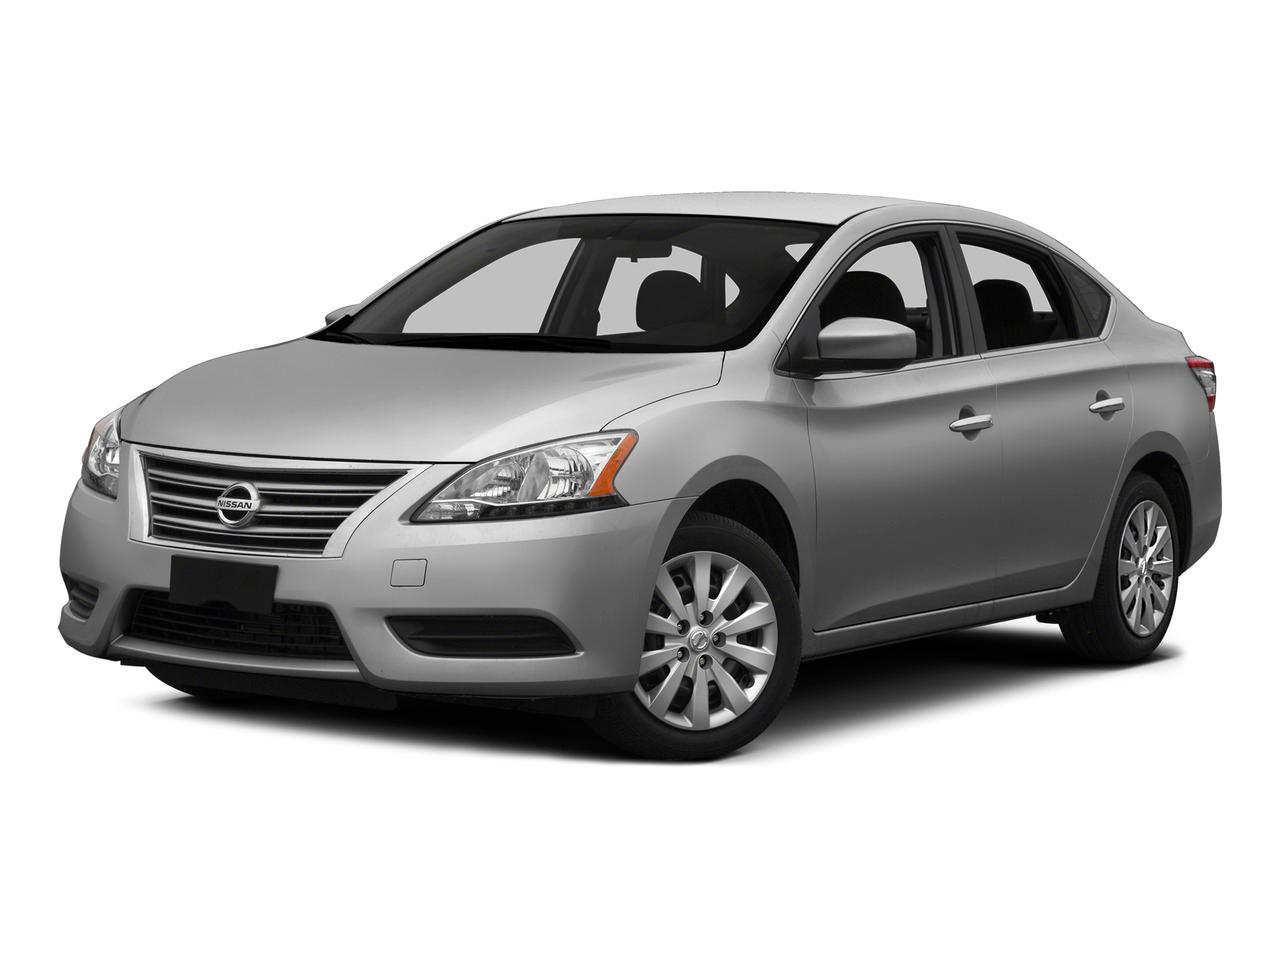 2015 Nissan Sentra Vehicle Photo in Baltimore, MD 21207